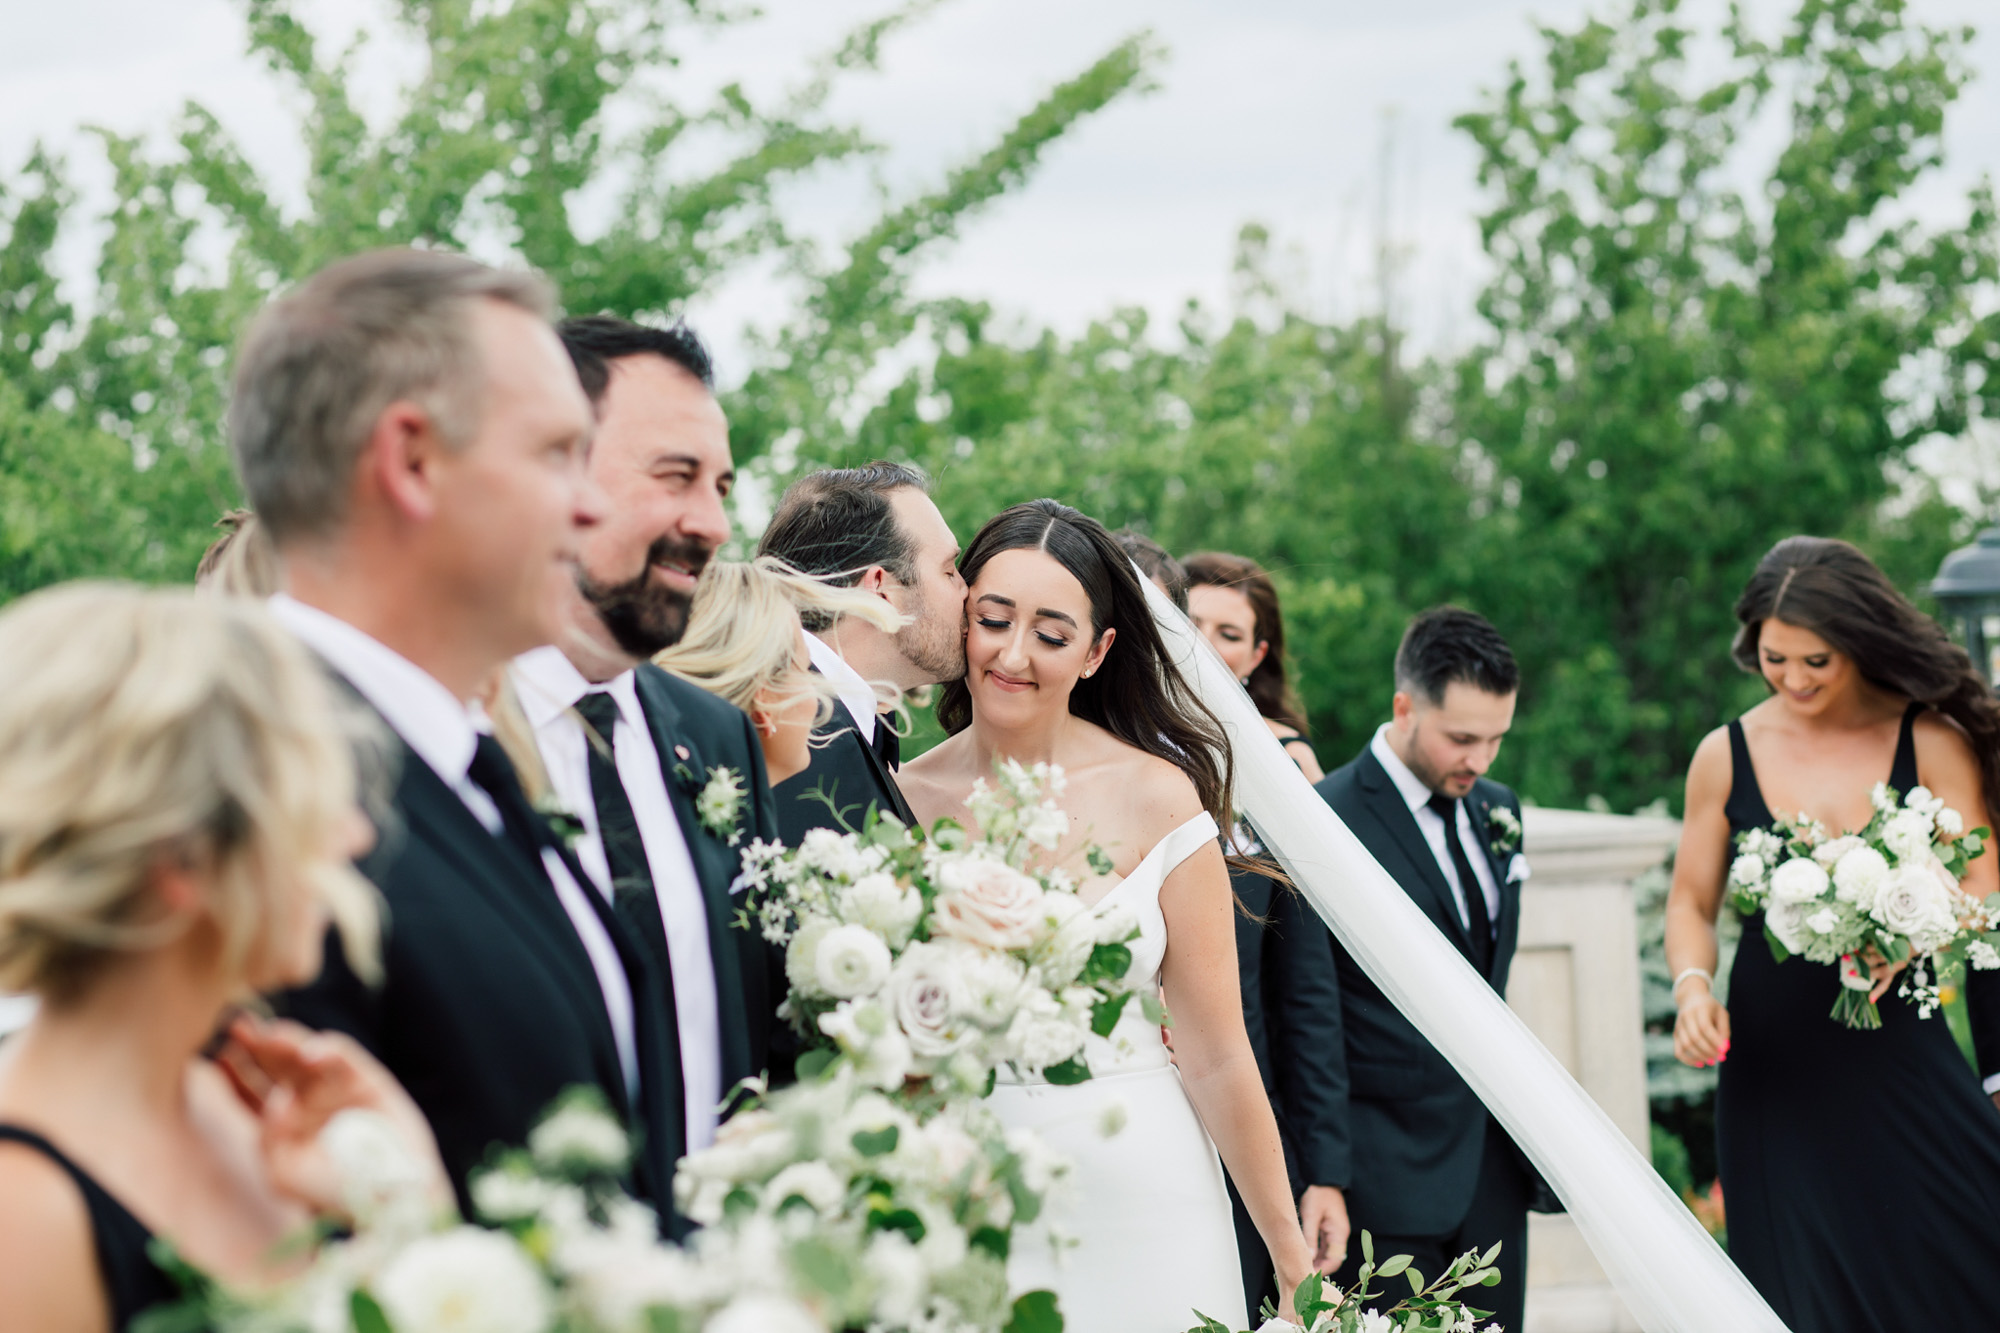 Wedding party photographs